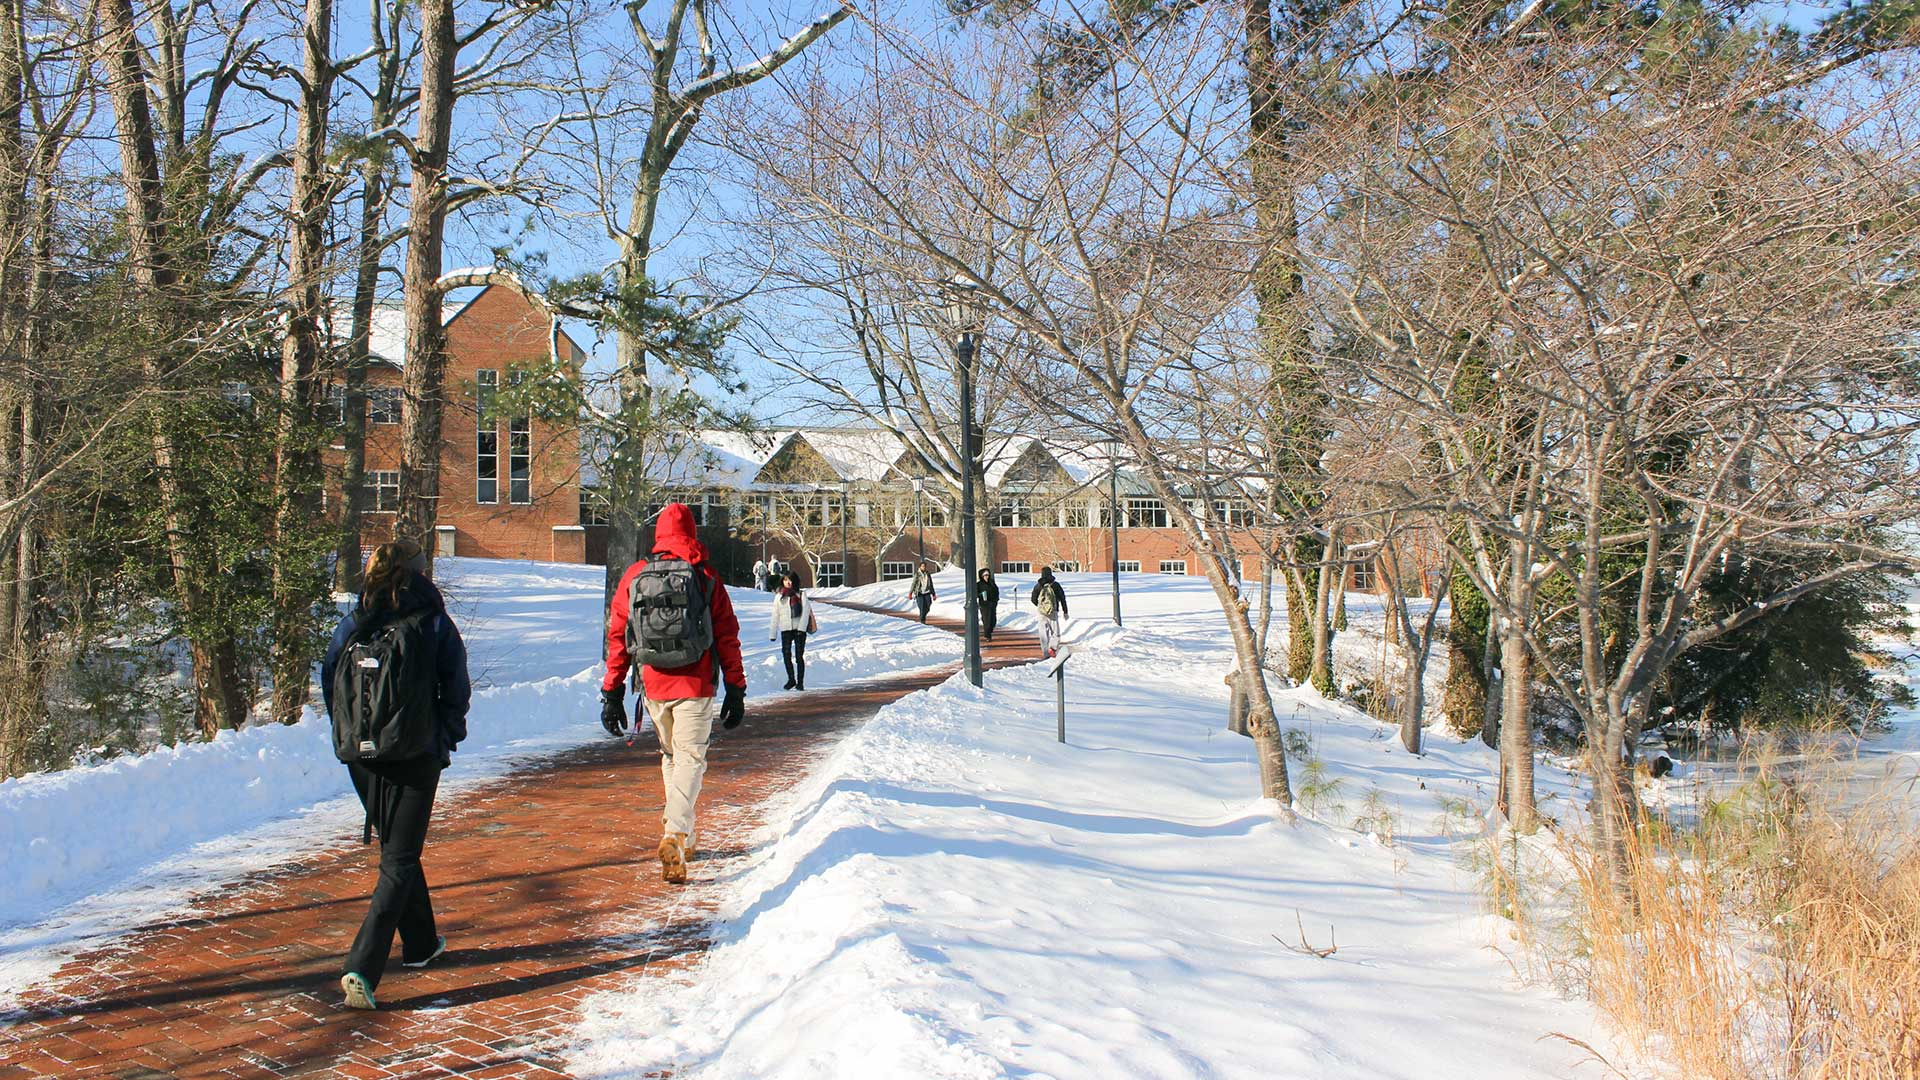 SMCM St. John's Pond pedestrian path leading to the Campus Center and Hilda C. Landers Library